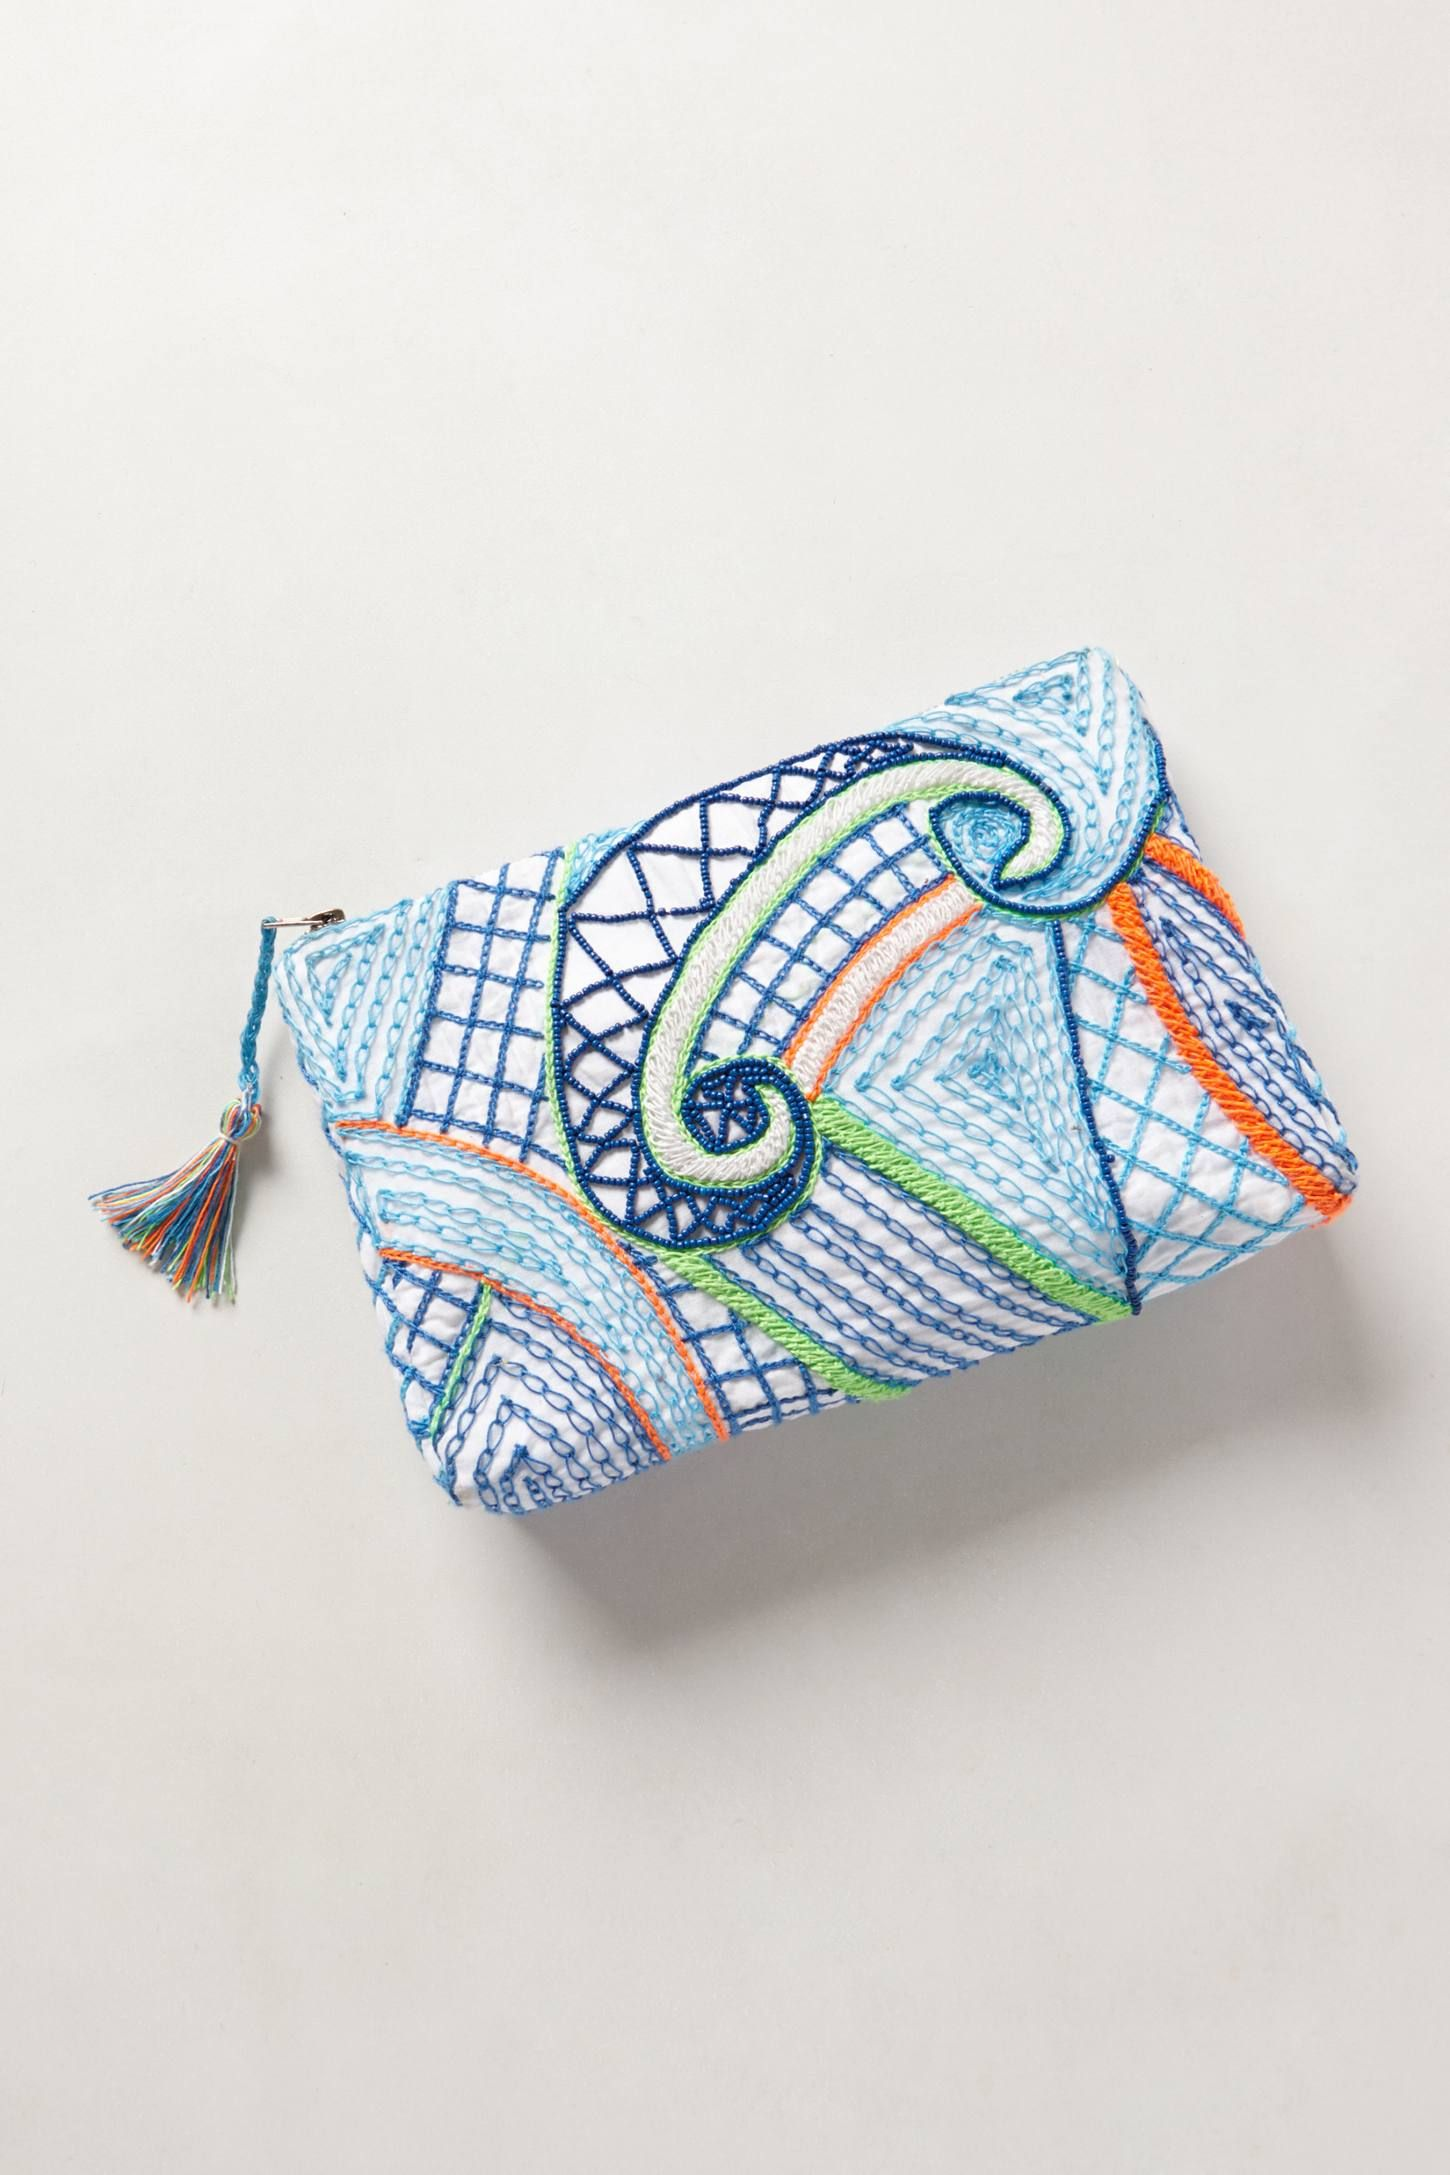 Mirabilis Pouch - anthropologie.com